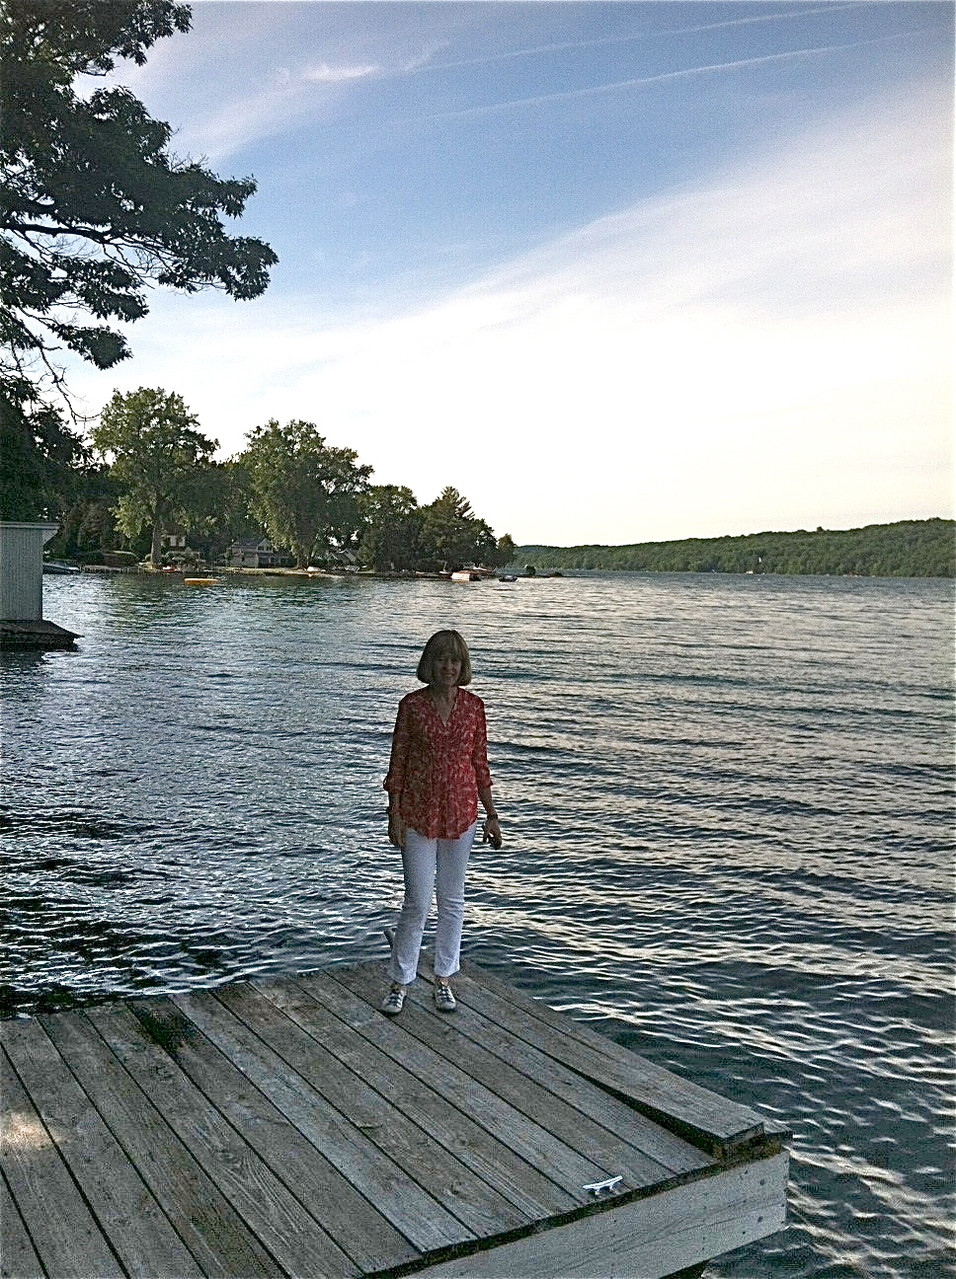 Nancy at Skaneateles Lake, Celeste's Lakehouse